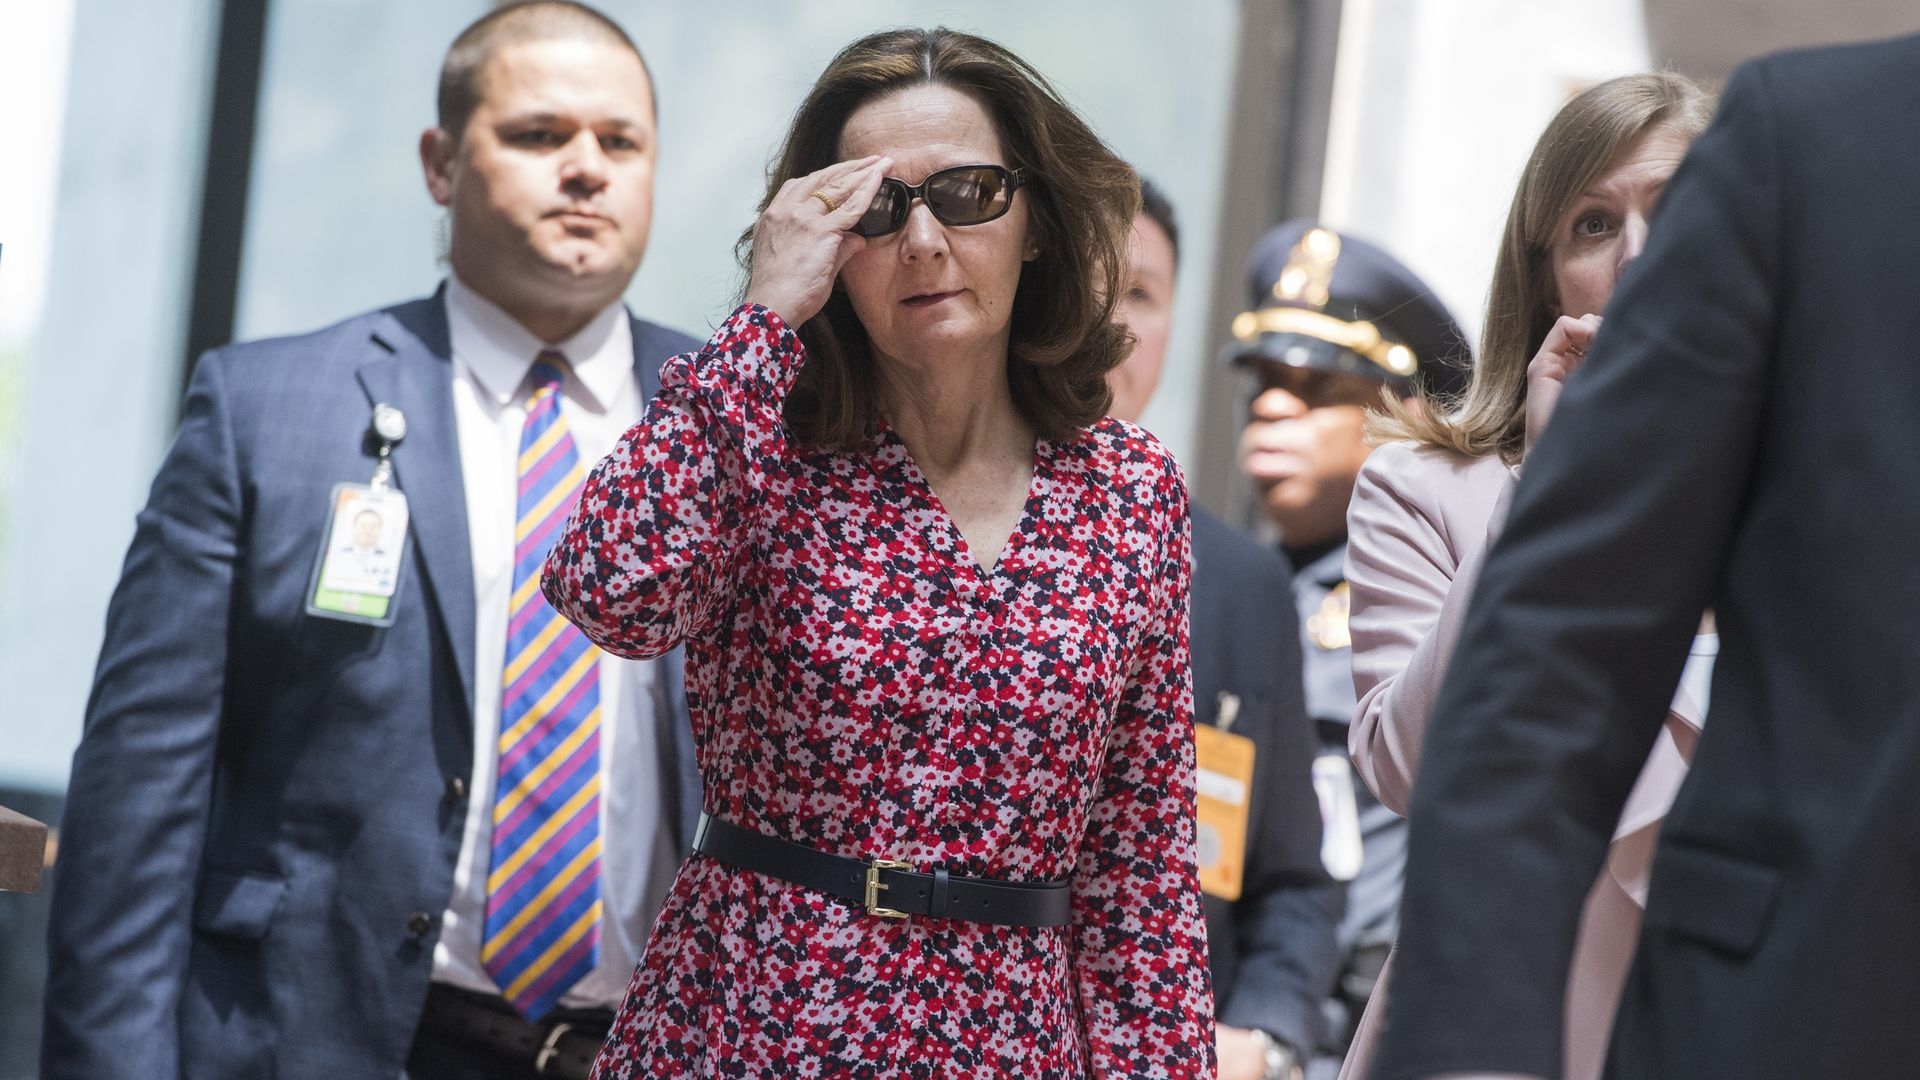 Gina Haspel holding her sunglasses, walking.